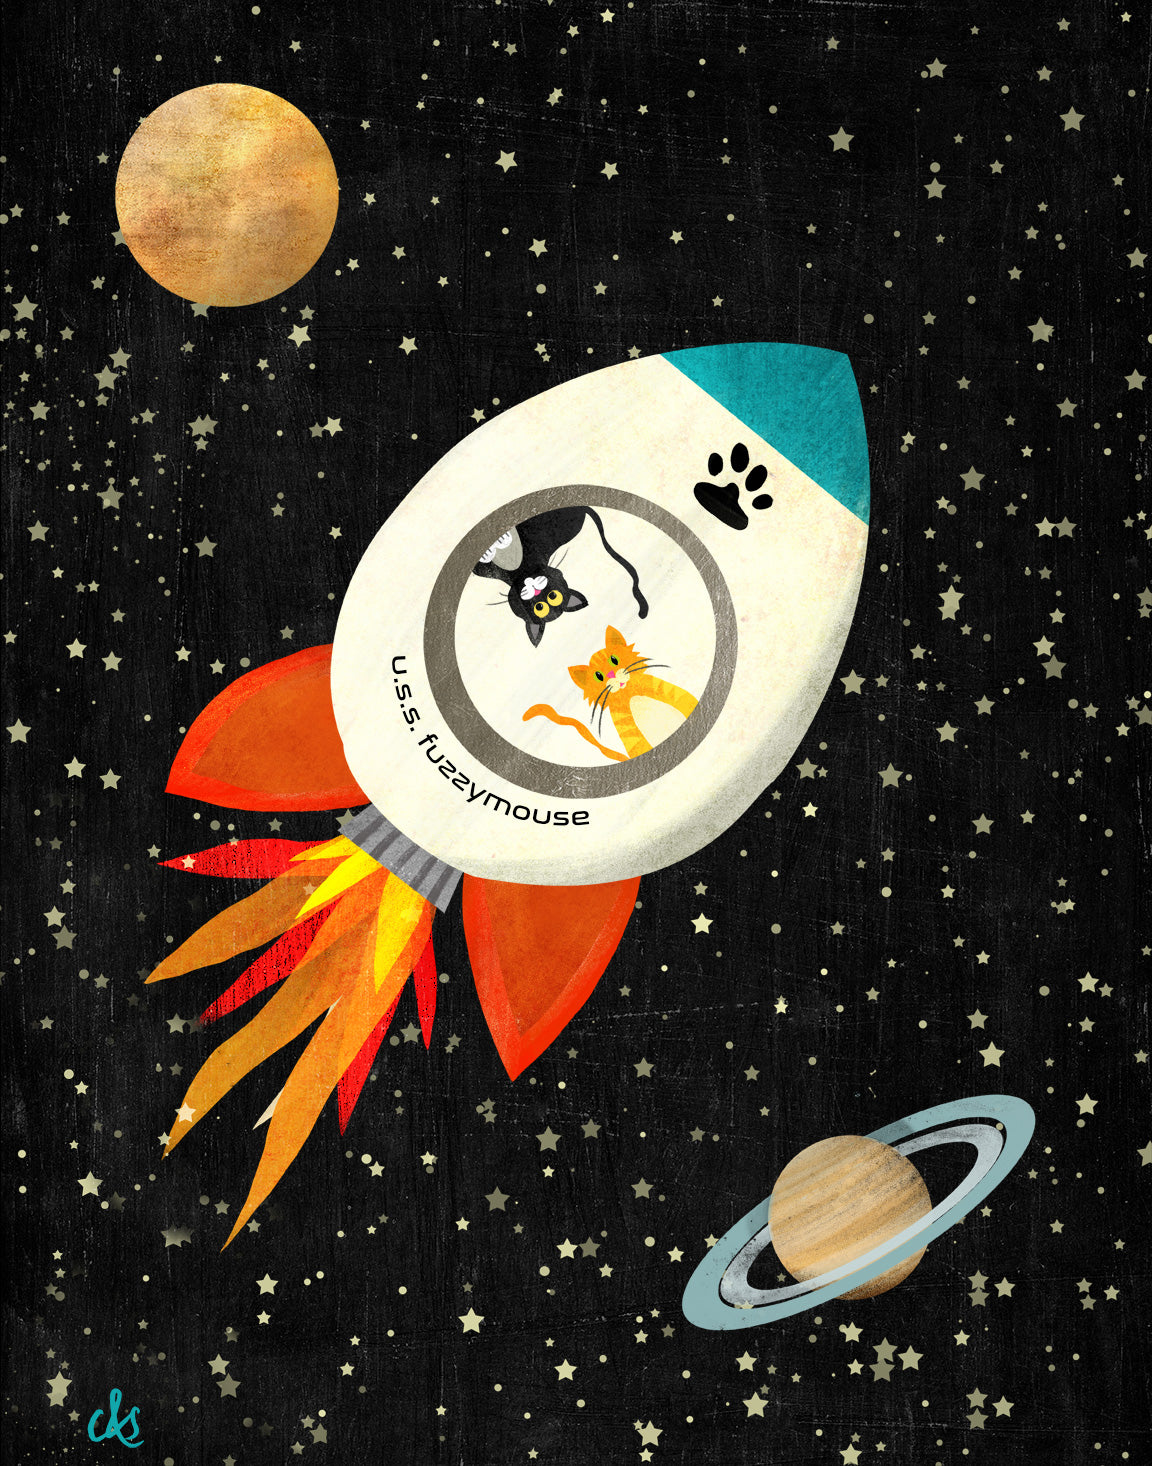 digital illustration of two cats in a rocket ship flying in outer space